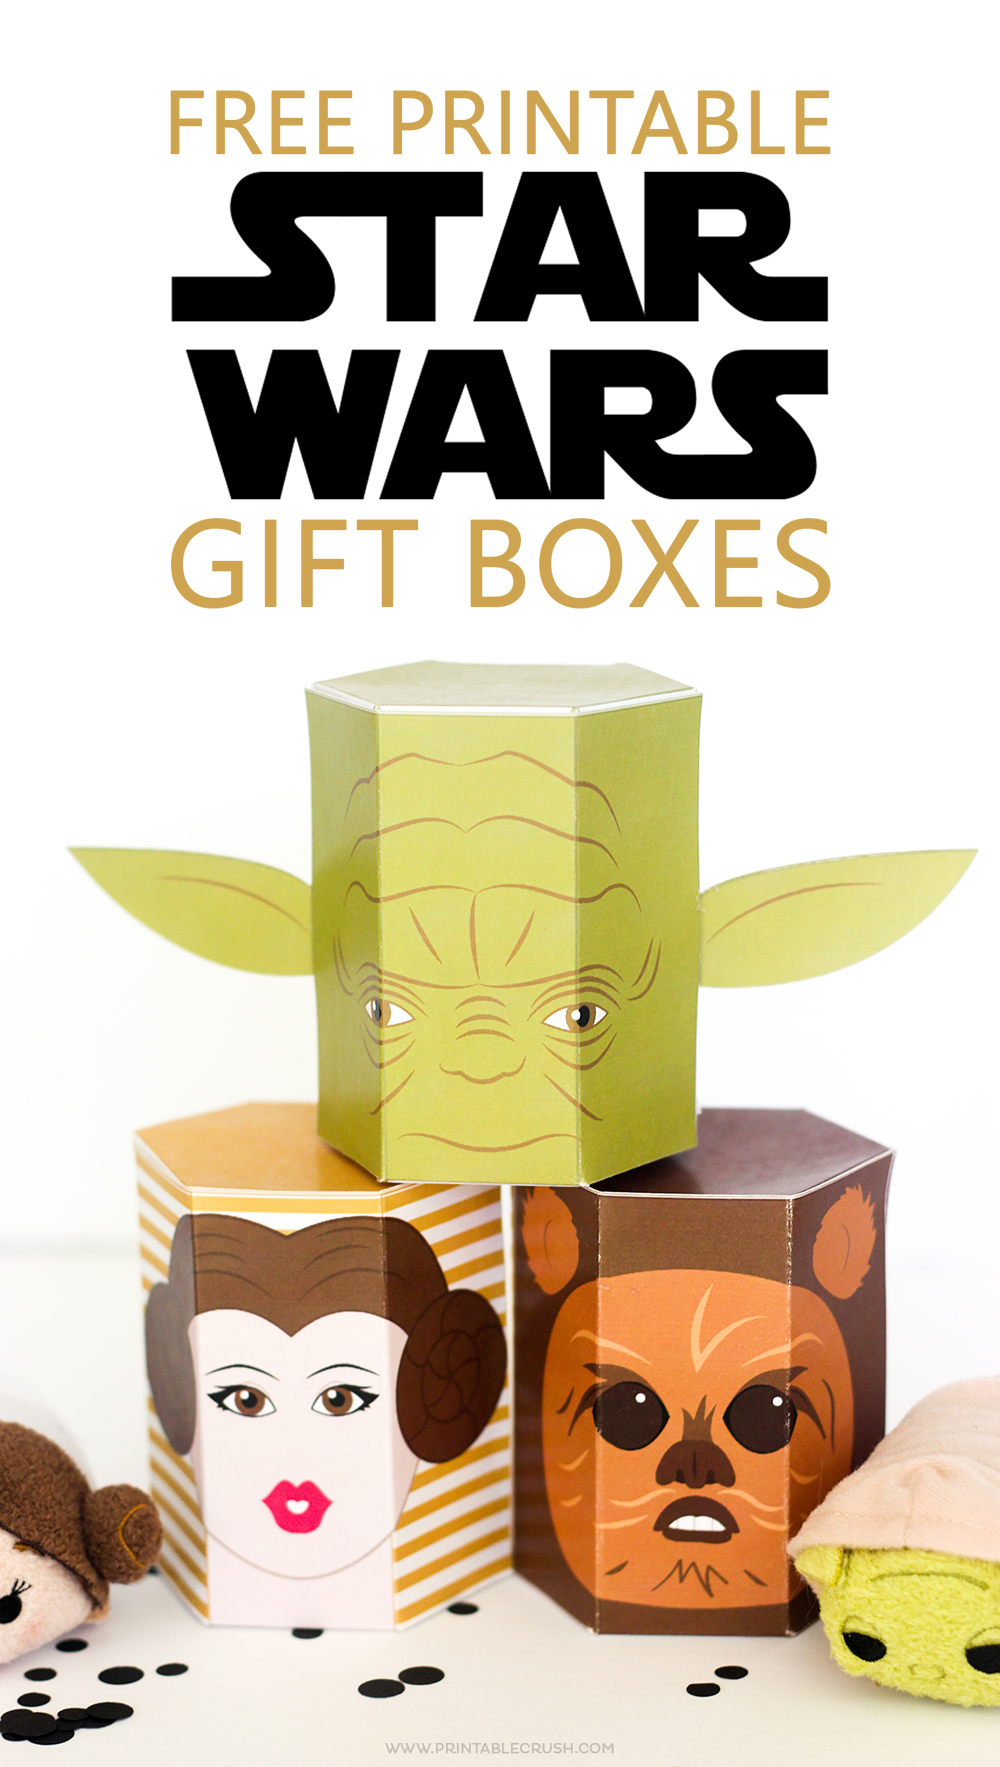 I created even MORE Star Wars FREE Printable Gift Boxes! These are great because you can fill them with treats, presents or cute Tsum Tsums!